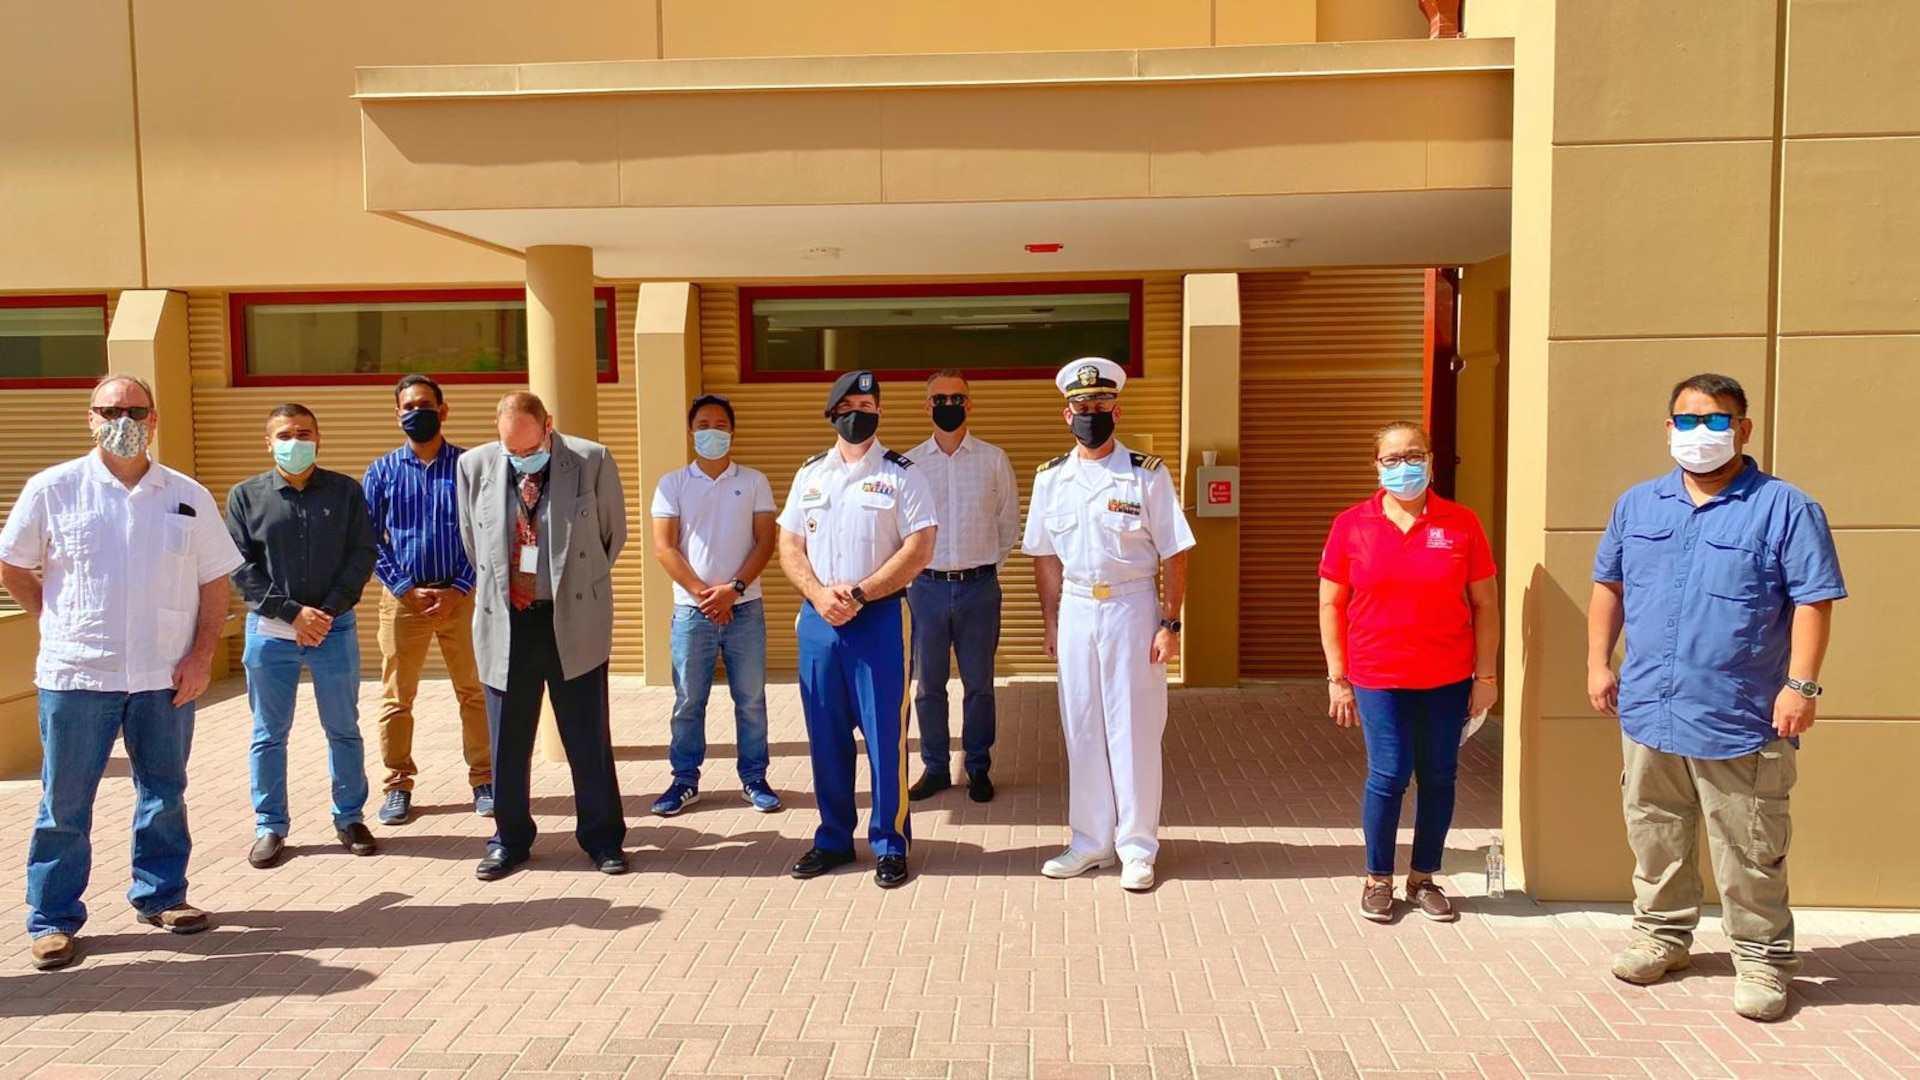 Naval Support Activity Bahrain along with personnel from the U.S. Army Corps of Engineers and the Bureau of Navy Medicine held a ribbon cutting ceremony for a new medical and dental clinic on Naval Support Activity Bahrain. The new 56,000 square foot facility, will substantially increase medical capacities and capabilities for sailors and their families stationed in Bahrain. Construction was overseen by the U.S. Army Corps of Engineers and completed in December of 2019.